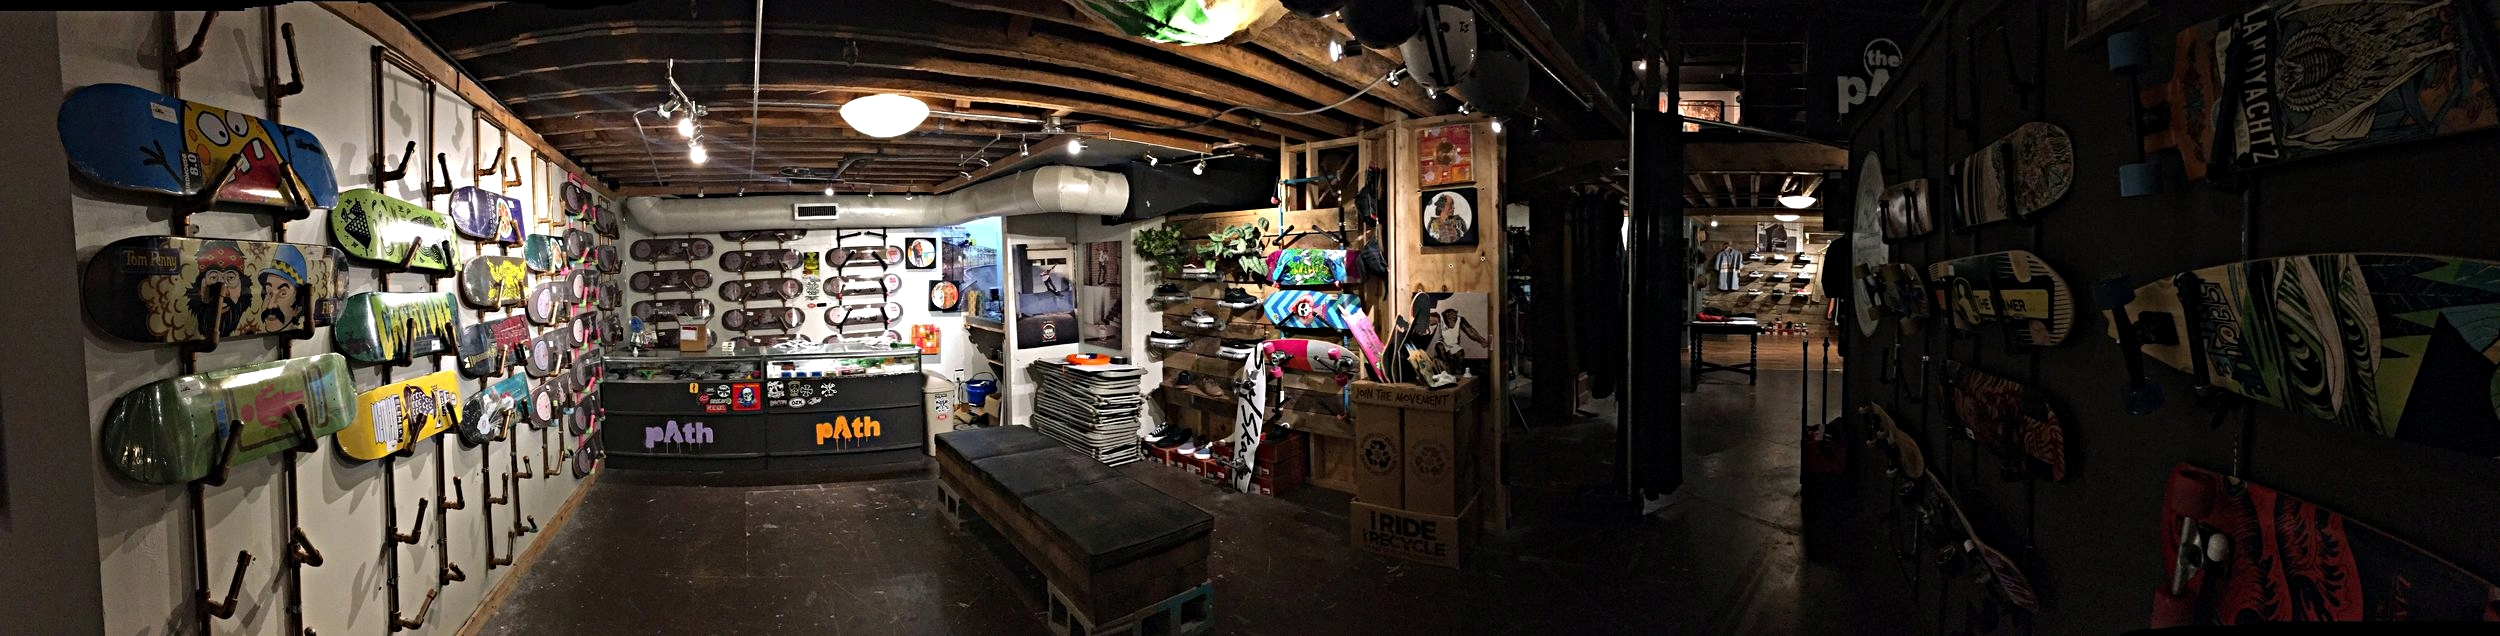 Path Outfitters skateboard shop, 21 West Mountain St Fayetteville, AR. Friday, Apr. 21 2017. Numerous professional and locally made skateboards sit on display, along with skate shoes and professional longboards.